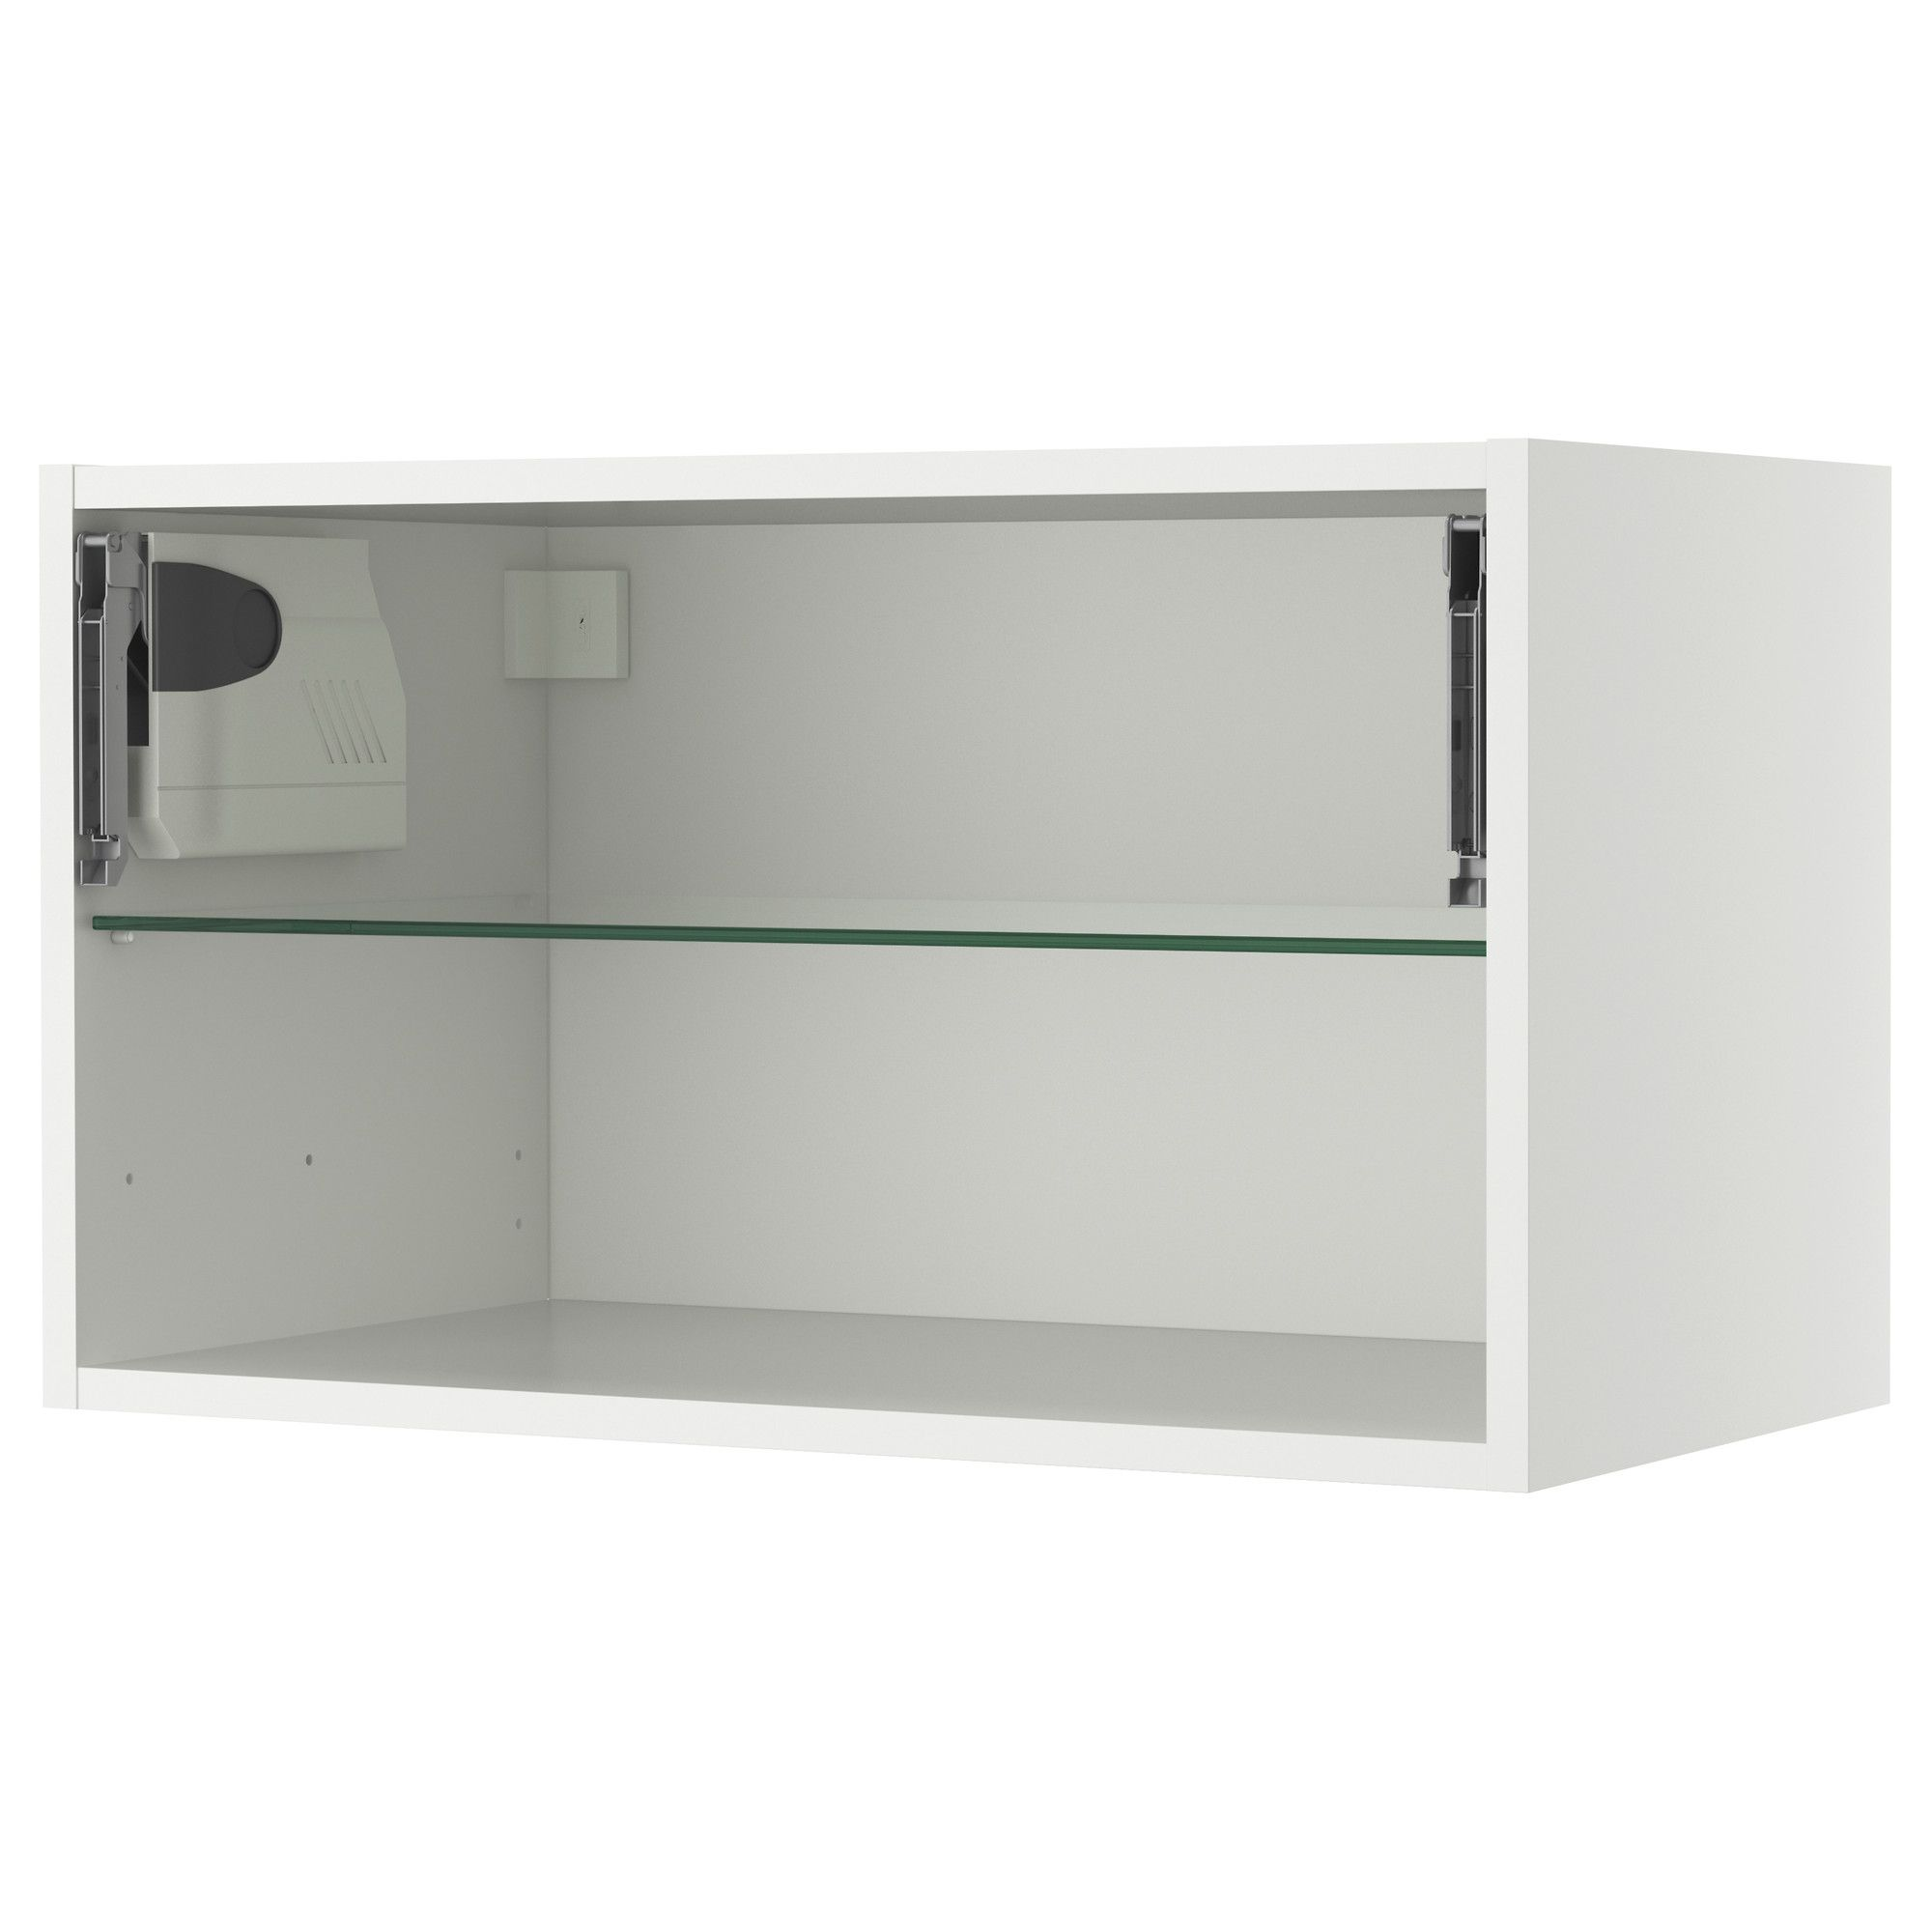 white kitchen wall cabinets modern art akurum cabinet frame horizontal 30x15